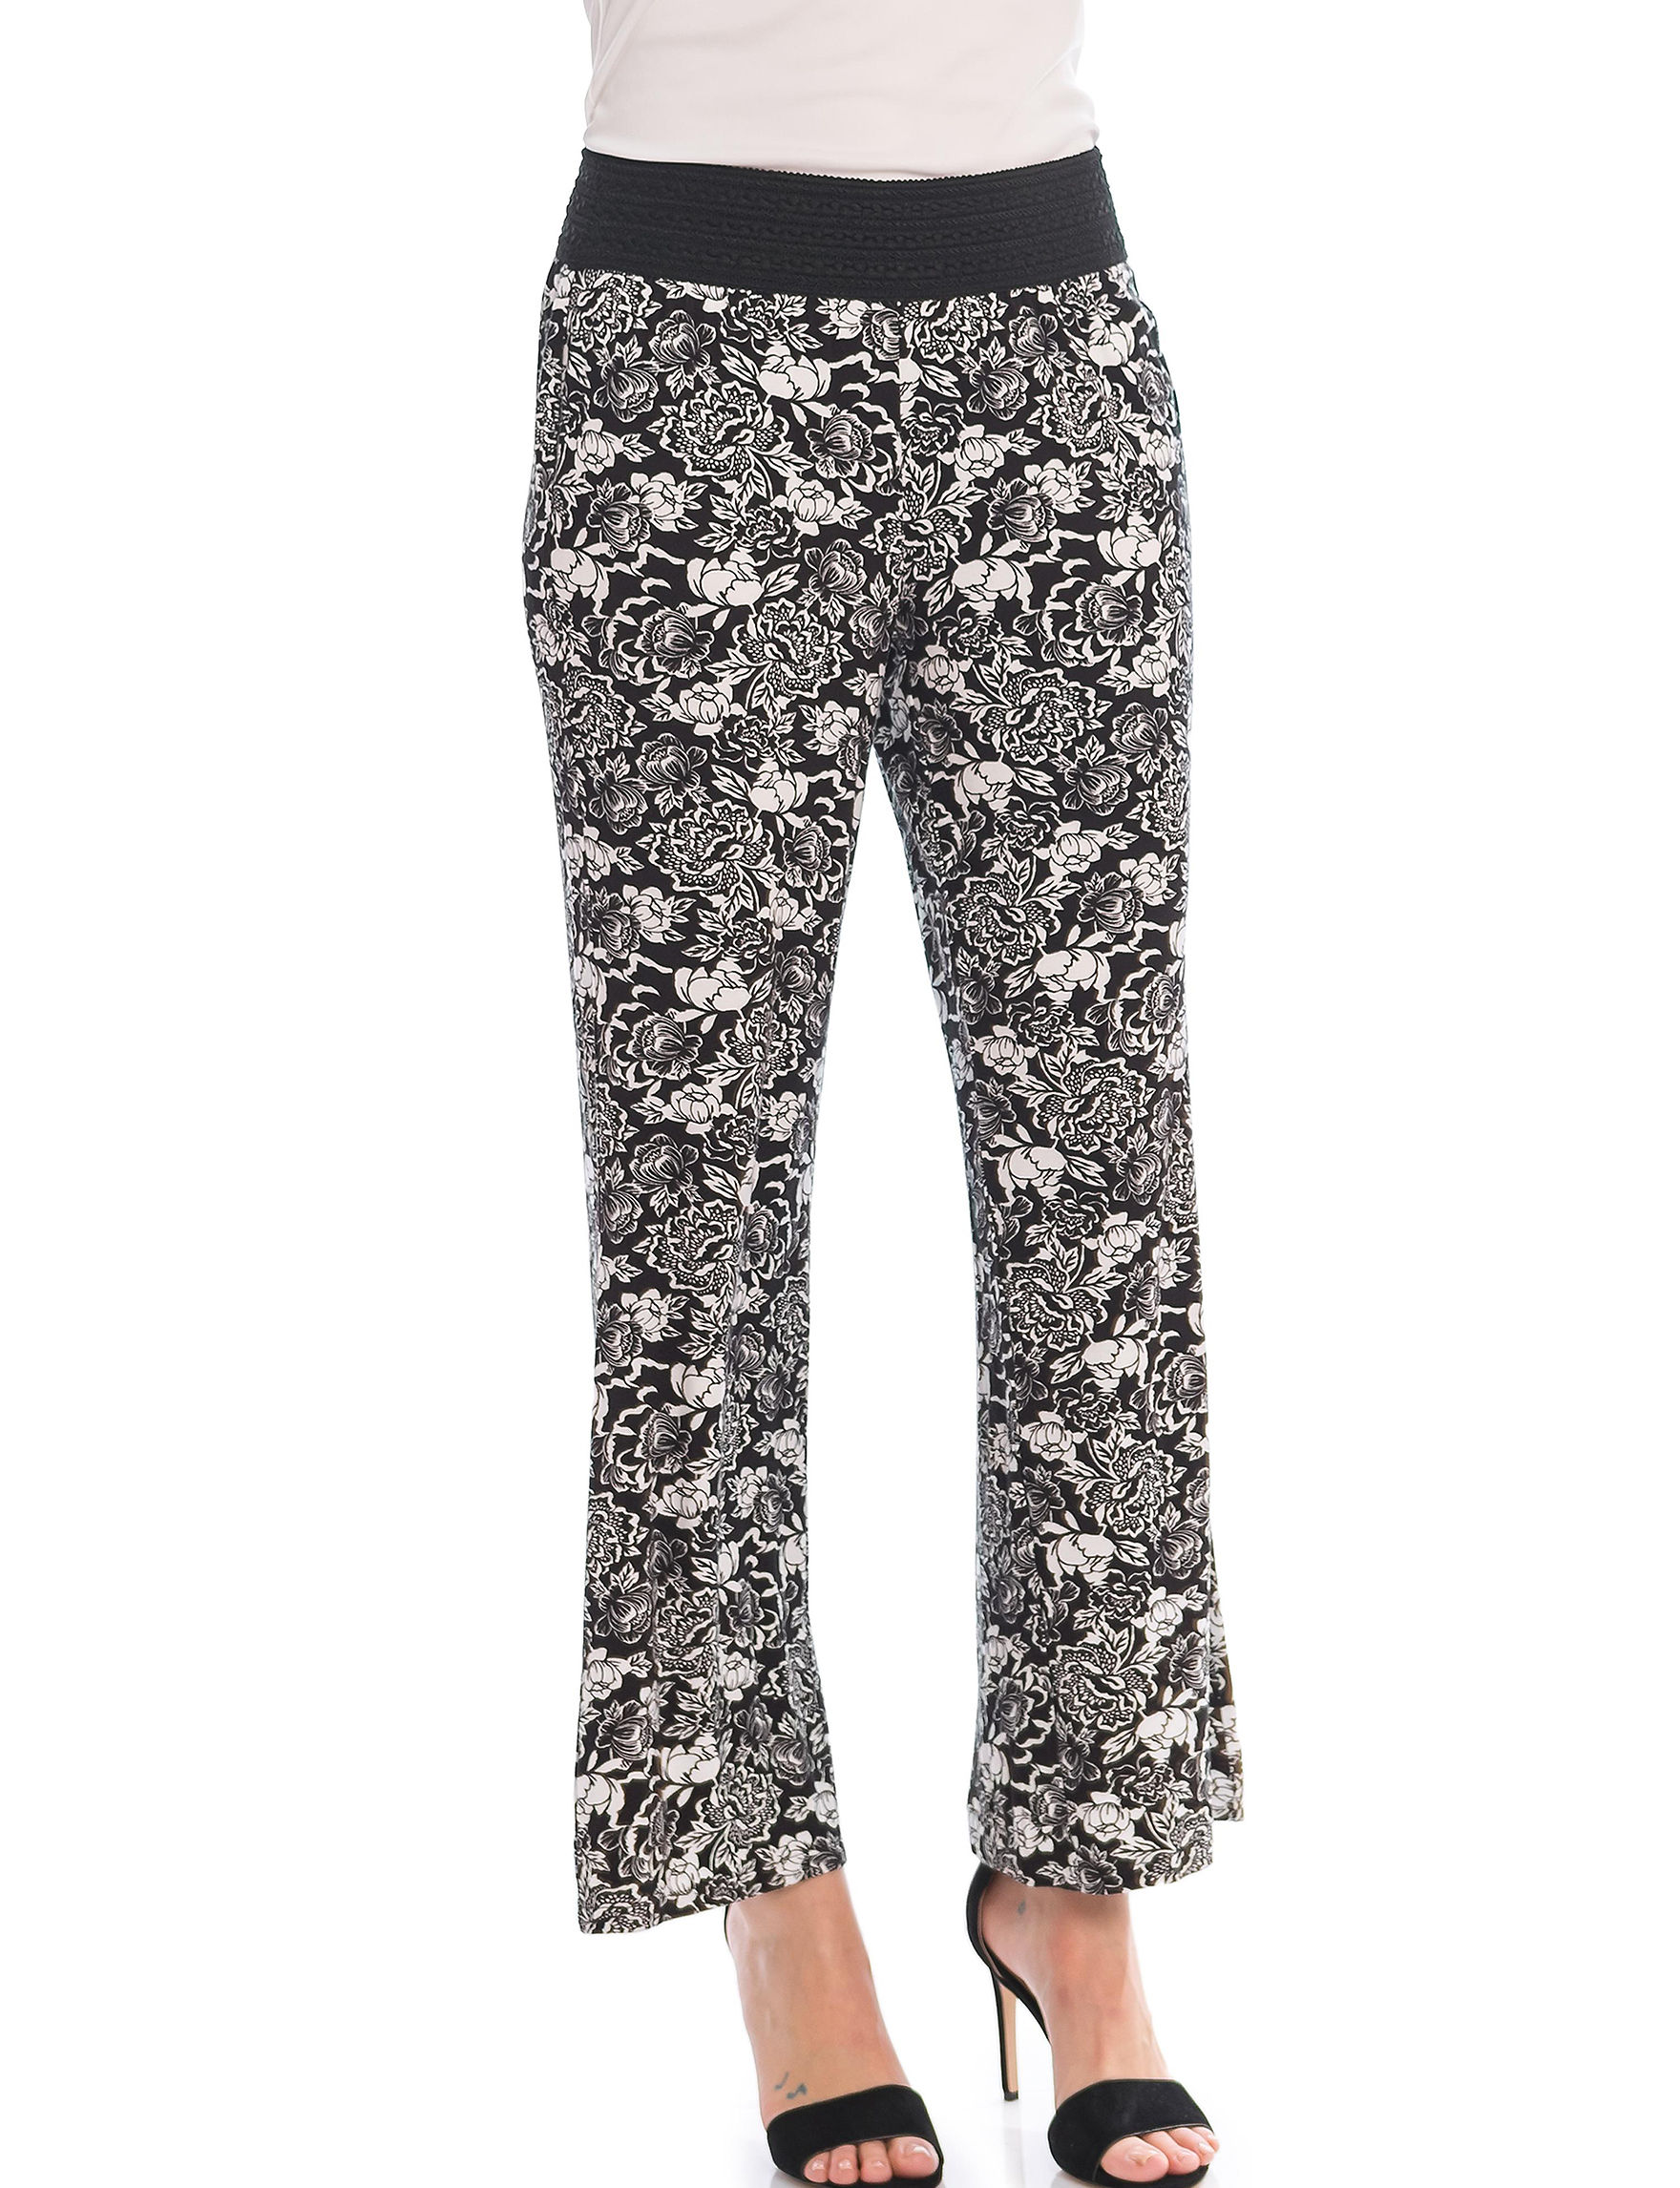 Skyes The Limit Black / White Relaxed Soft Pants